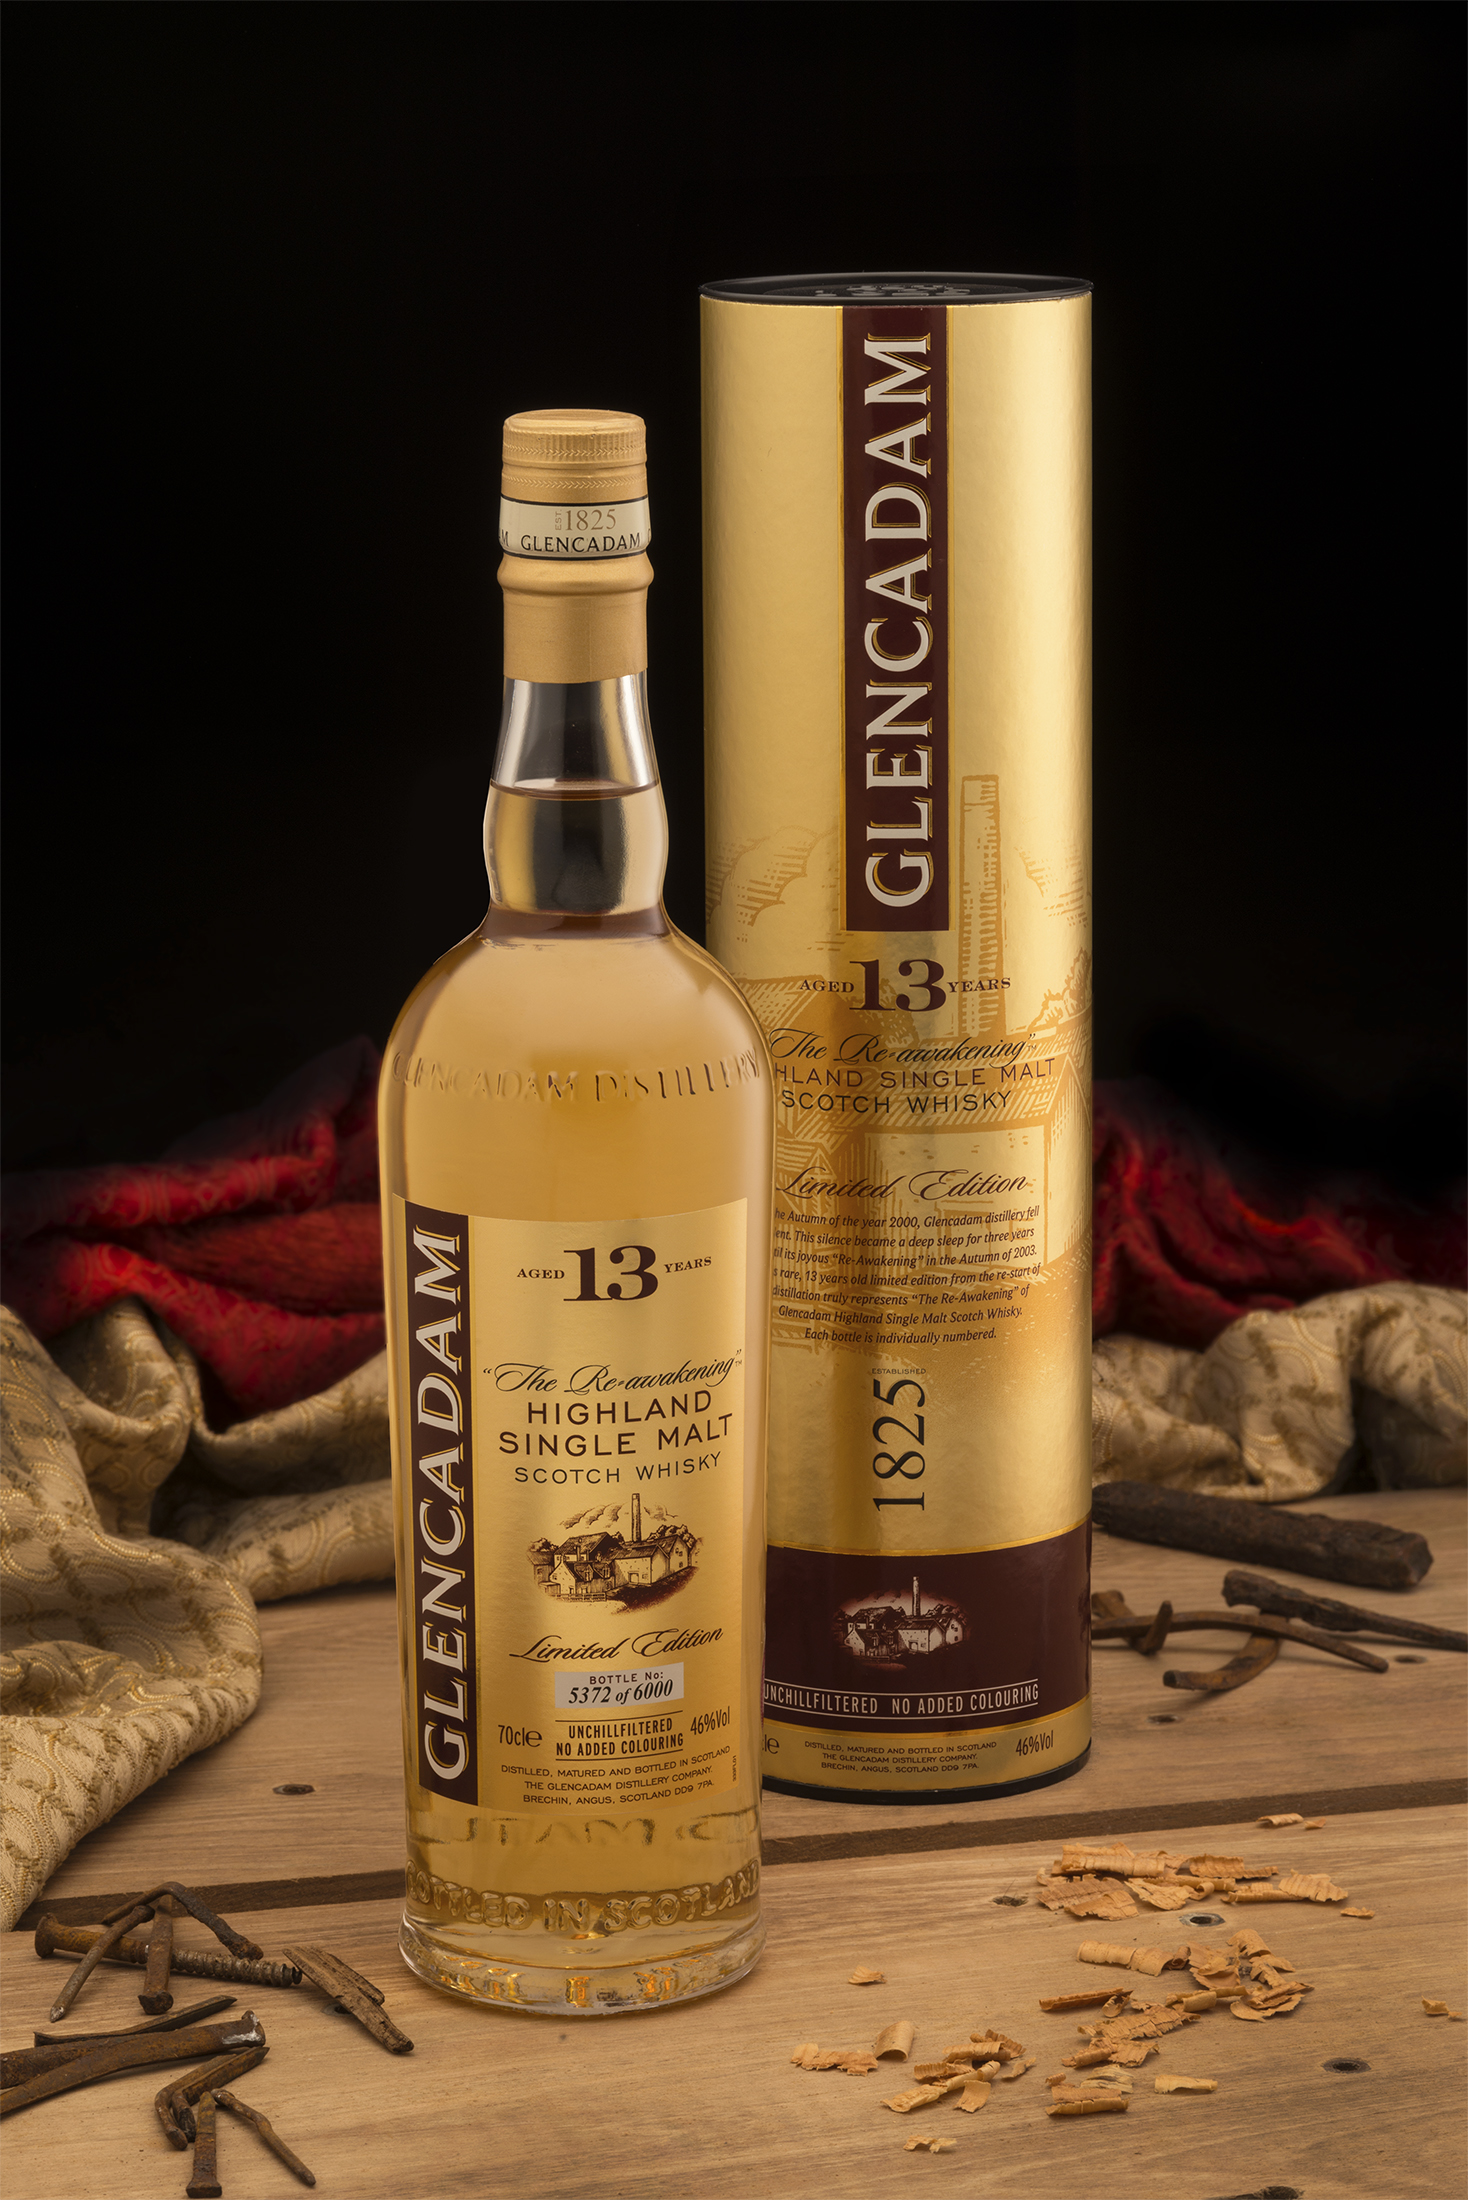 Limited Edition 13-Year-Old Whisky by Glencadam Distillery Limited Edition Limited Edition 13-Year-Old Whisky by Glencadam Distillery Glencadam 13 bottletube trad May 17